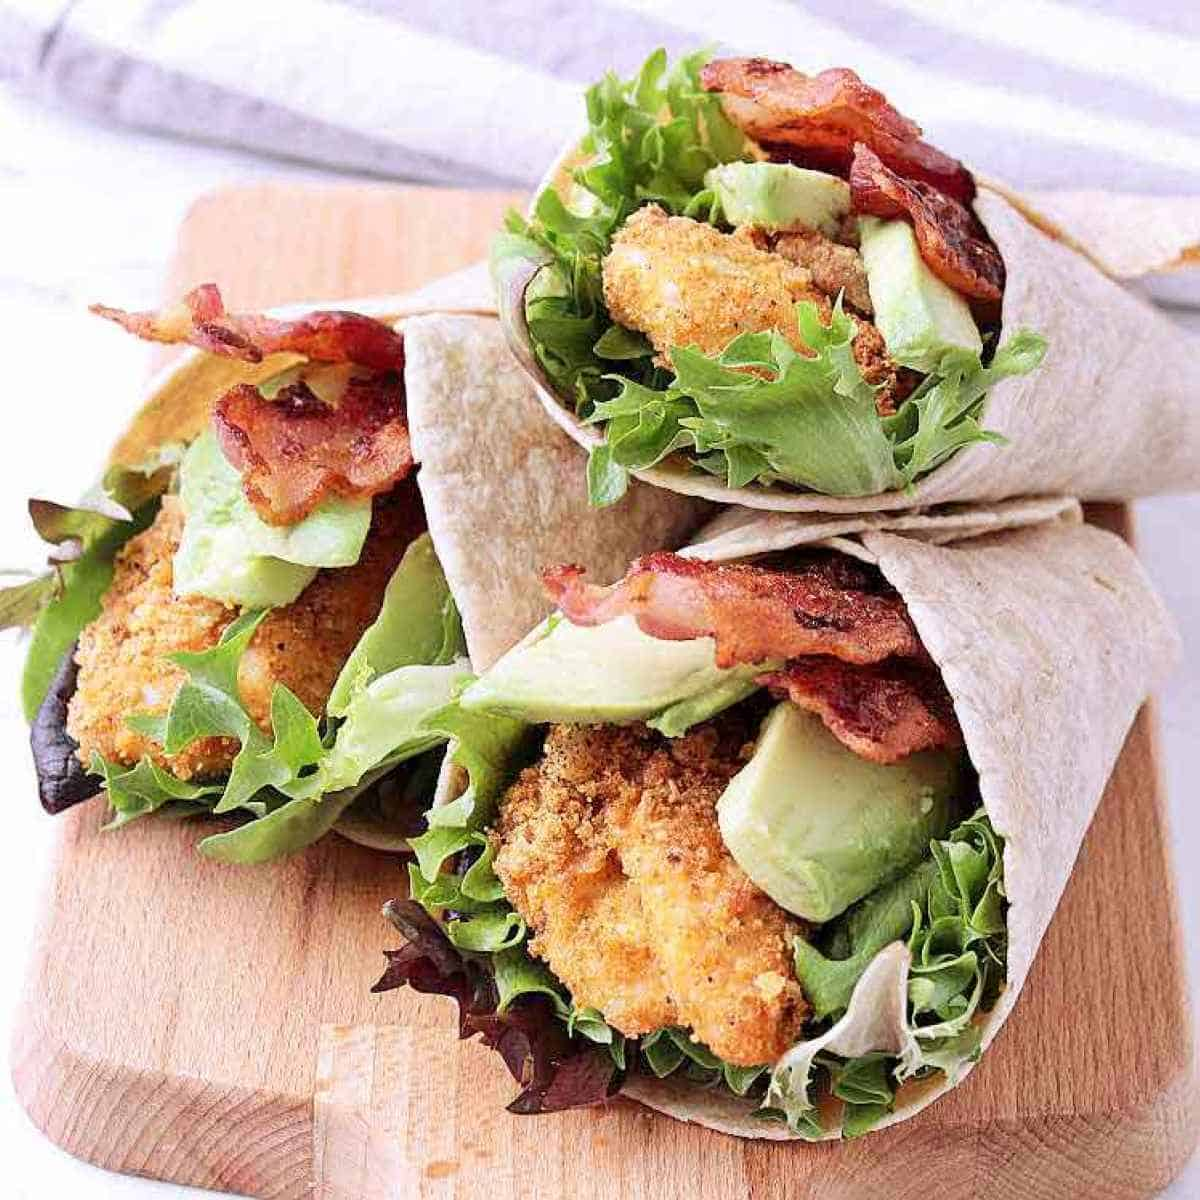 Low Carb Chicken Wrap loaded with bacon and avocado, sliced in half to show the inside goodies.